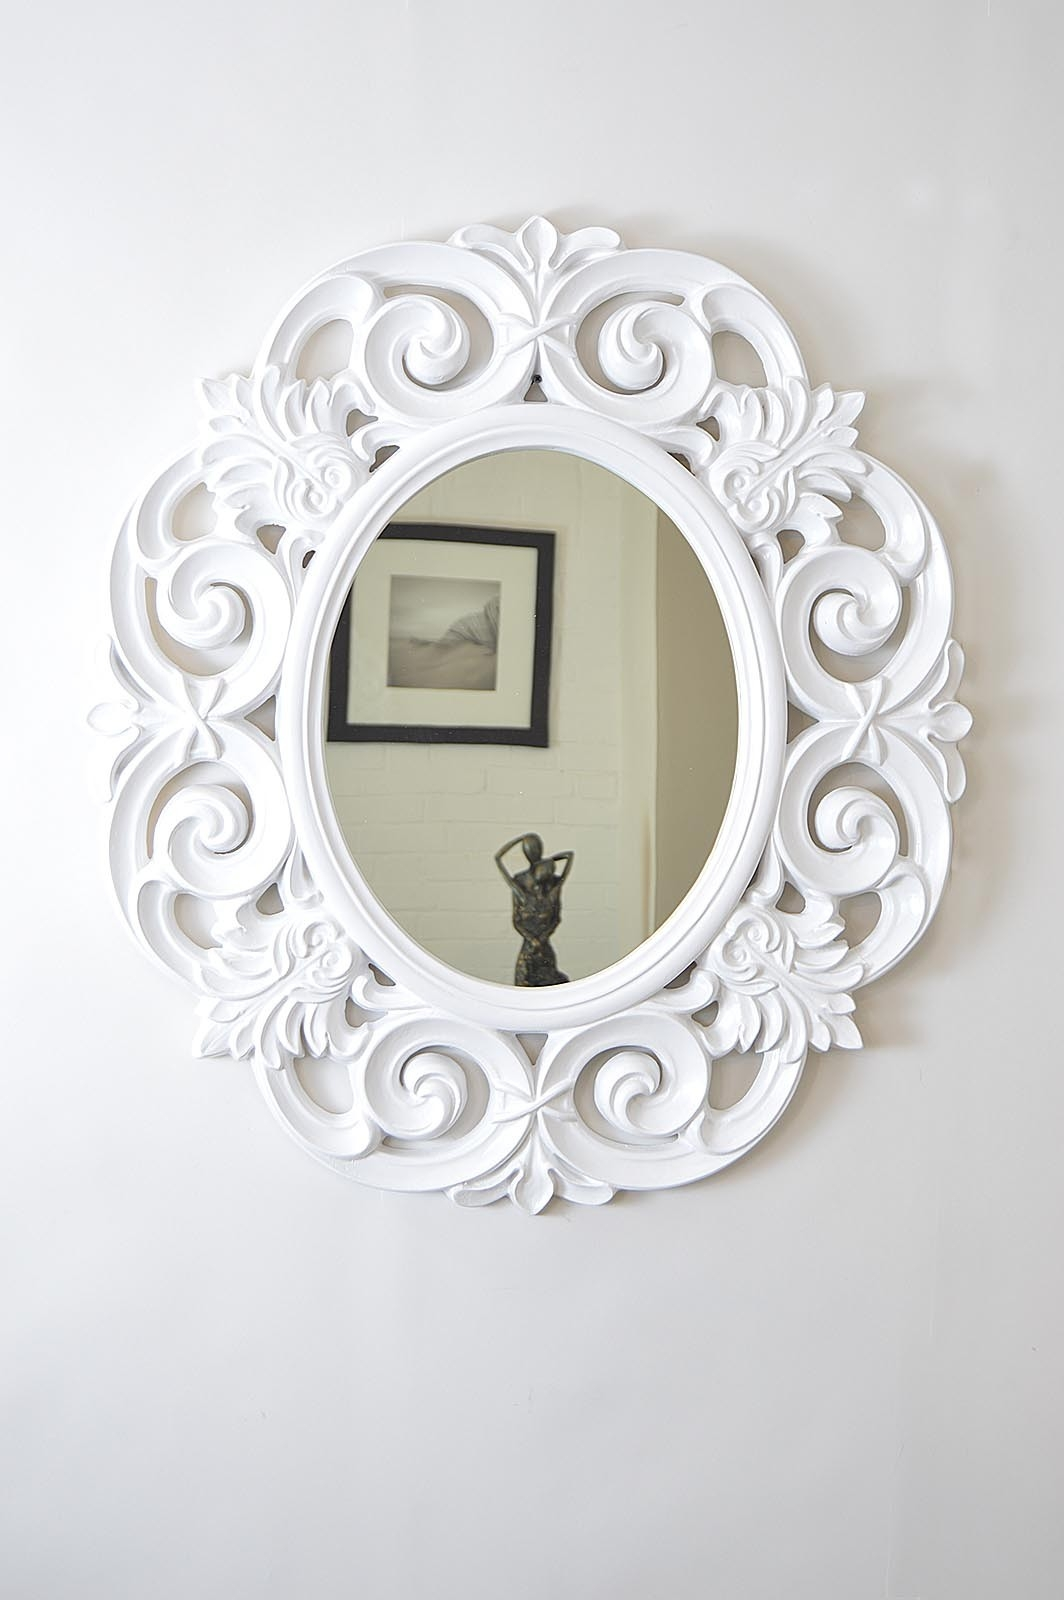 White Wall Mirrors Decorative Inarace Within White Ornate Mirrors (Image 13 of 15)